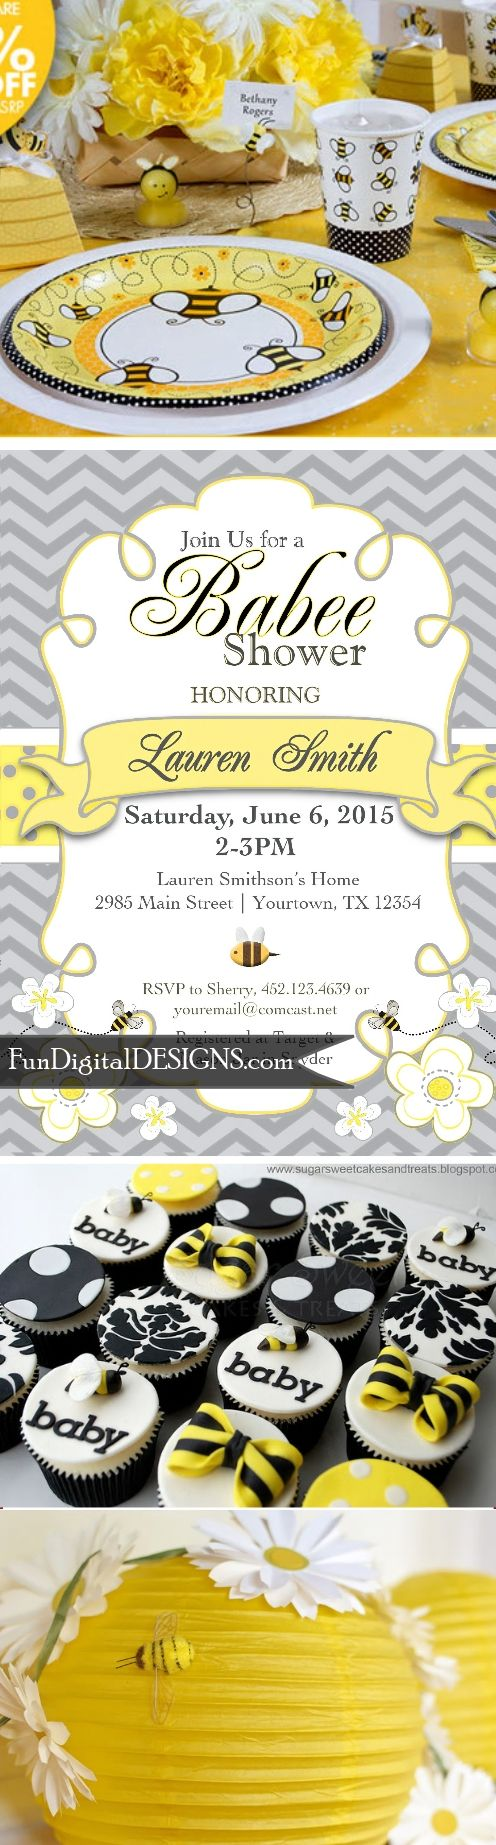 BABEE Shower Invitation, Mommy to Bee, Bumble Bee, Honey Bee Baby Shower Invitation yellow grey gray - Chevron - Digital- Printable